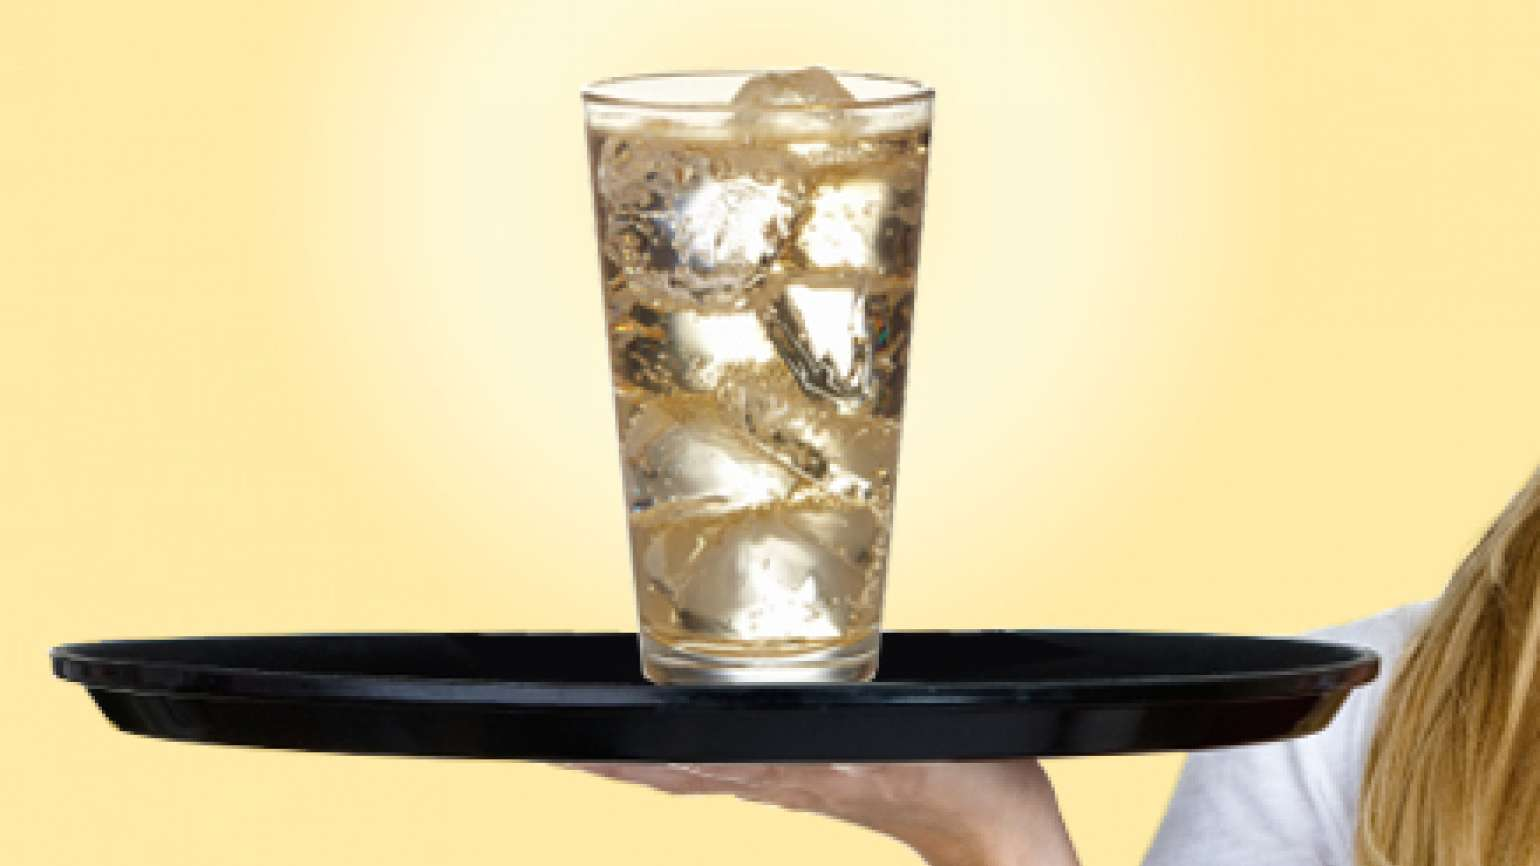 A server's tray with a lone glass of ginger ale on it